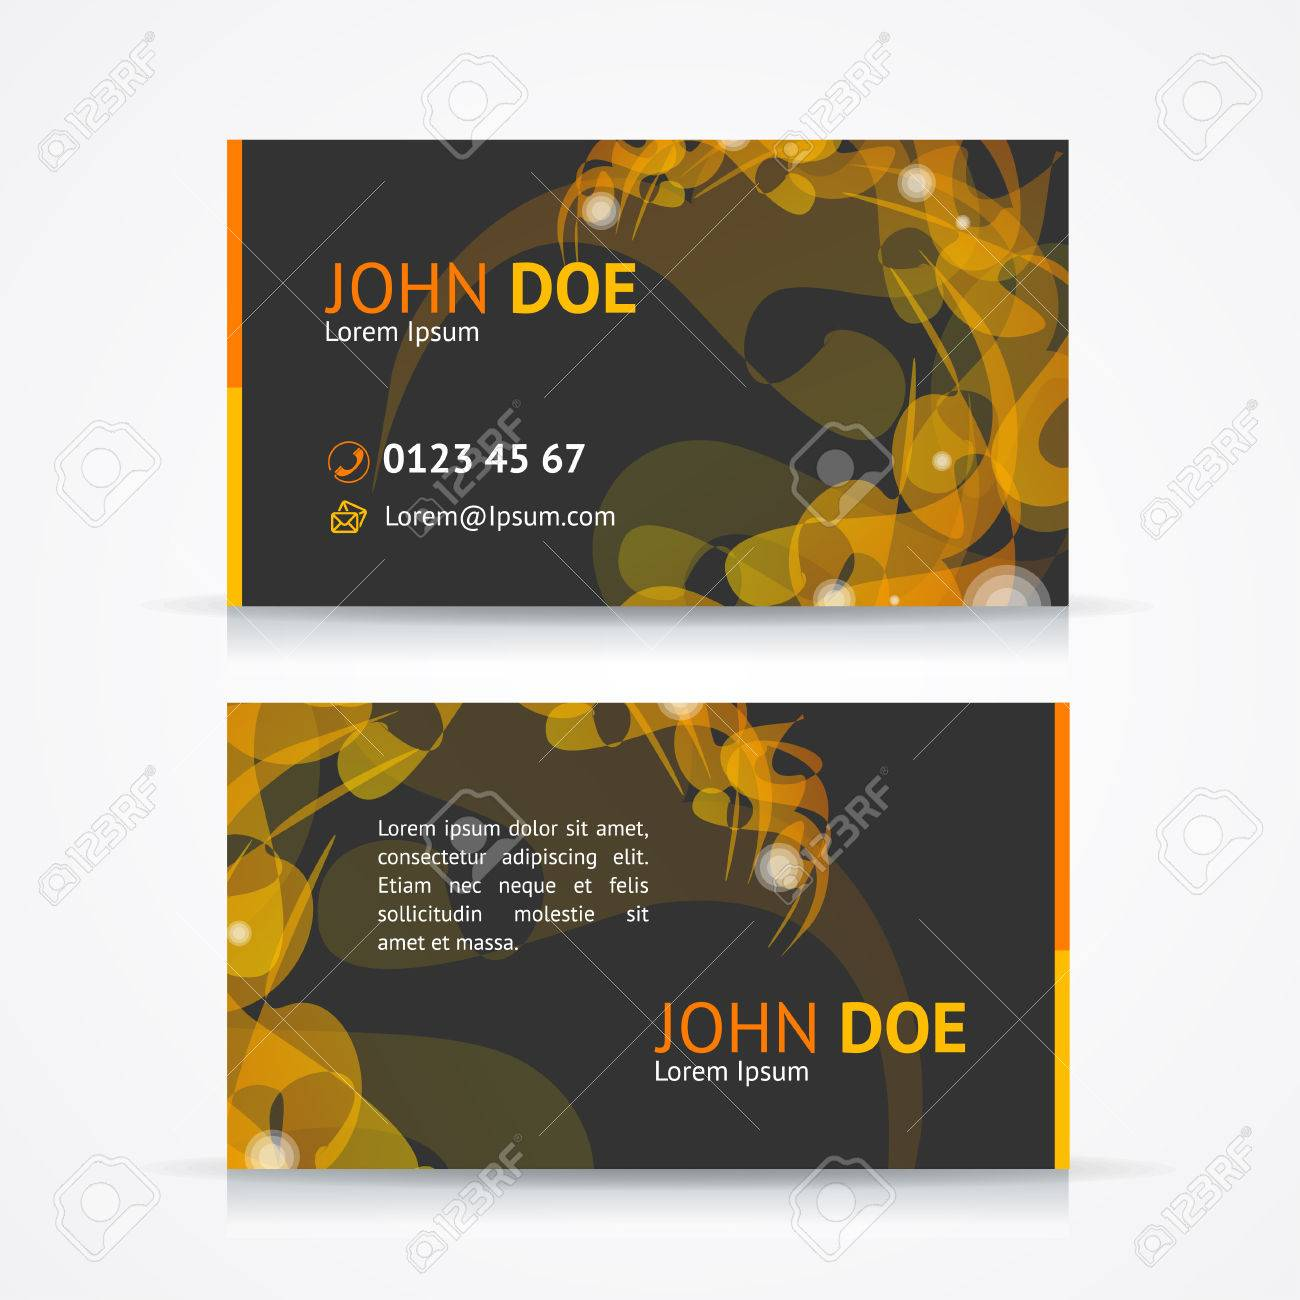 Vector Illustration Business Card Template With Abstract Geometric ...